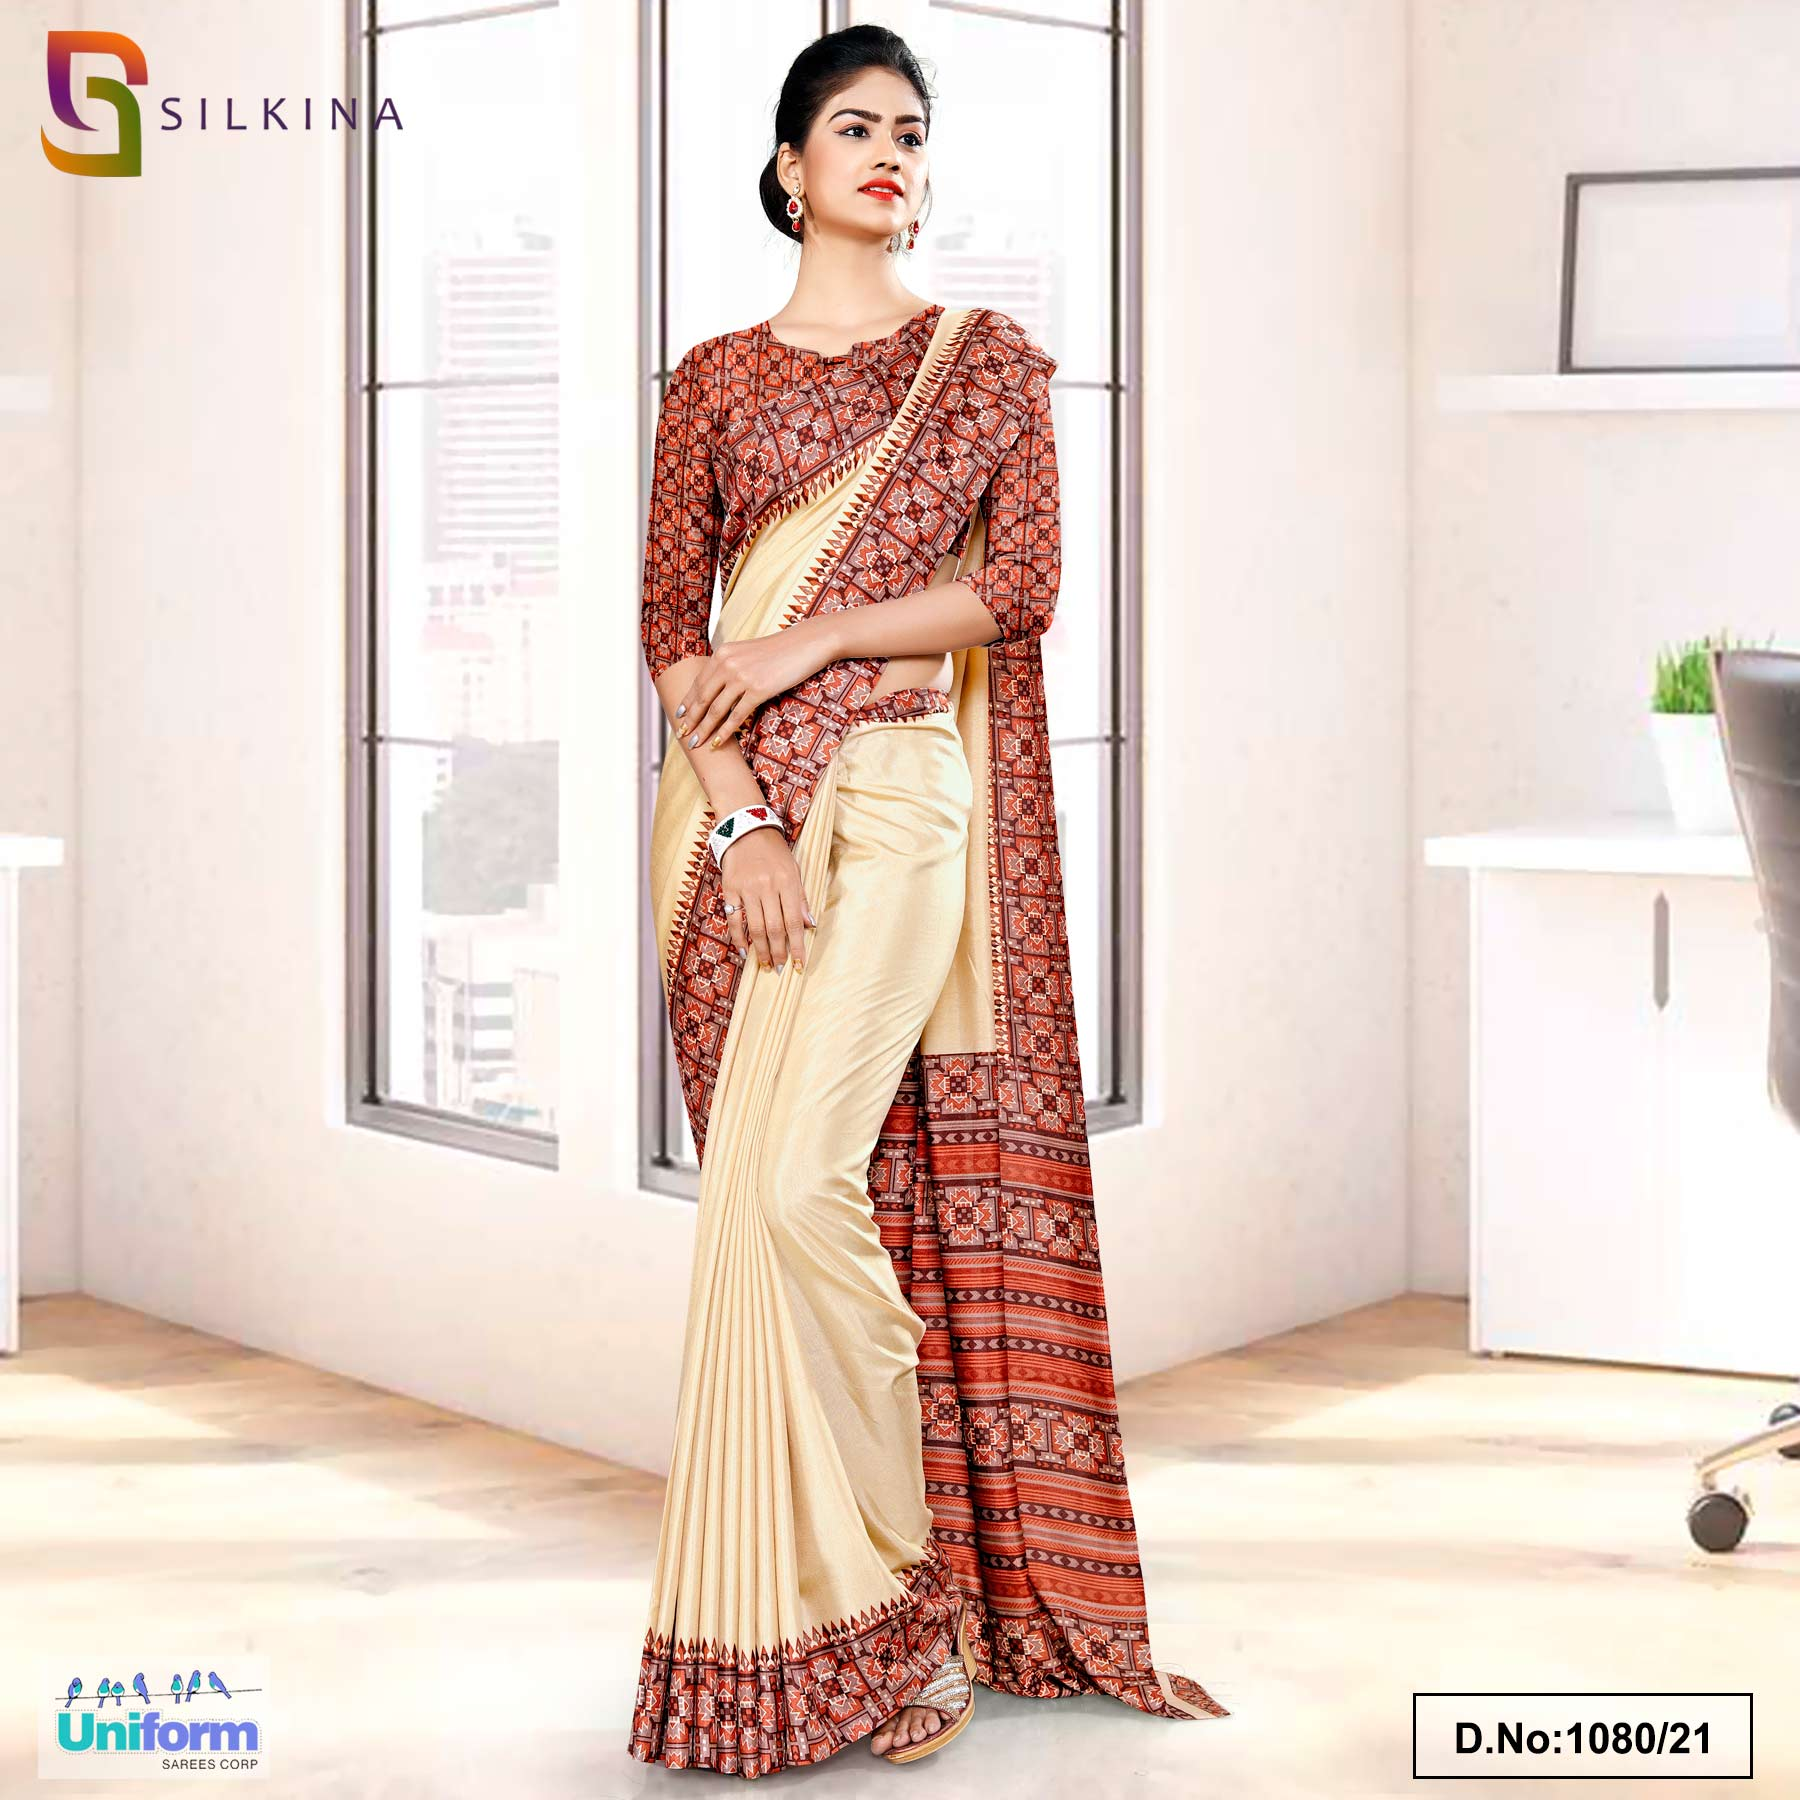 Beige Rust Printed Blouse Concept Polycotton Raw Silk Saree for College Uniform Sarees